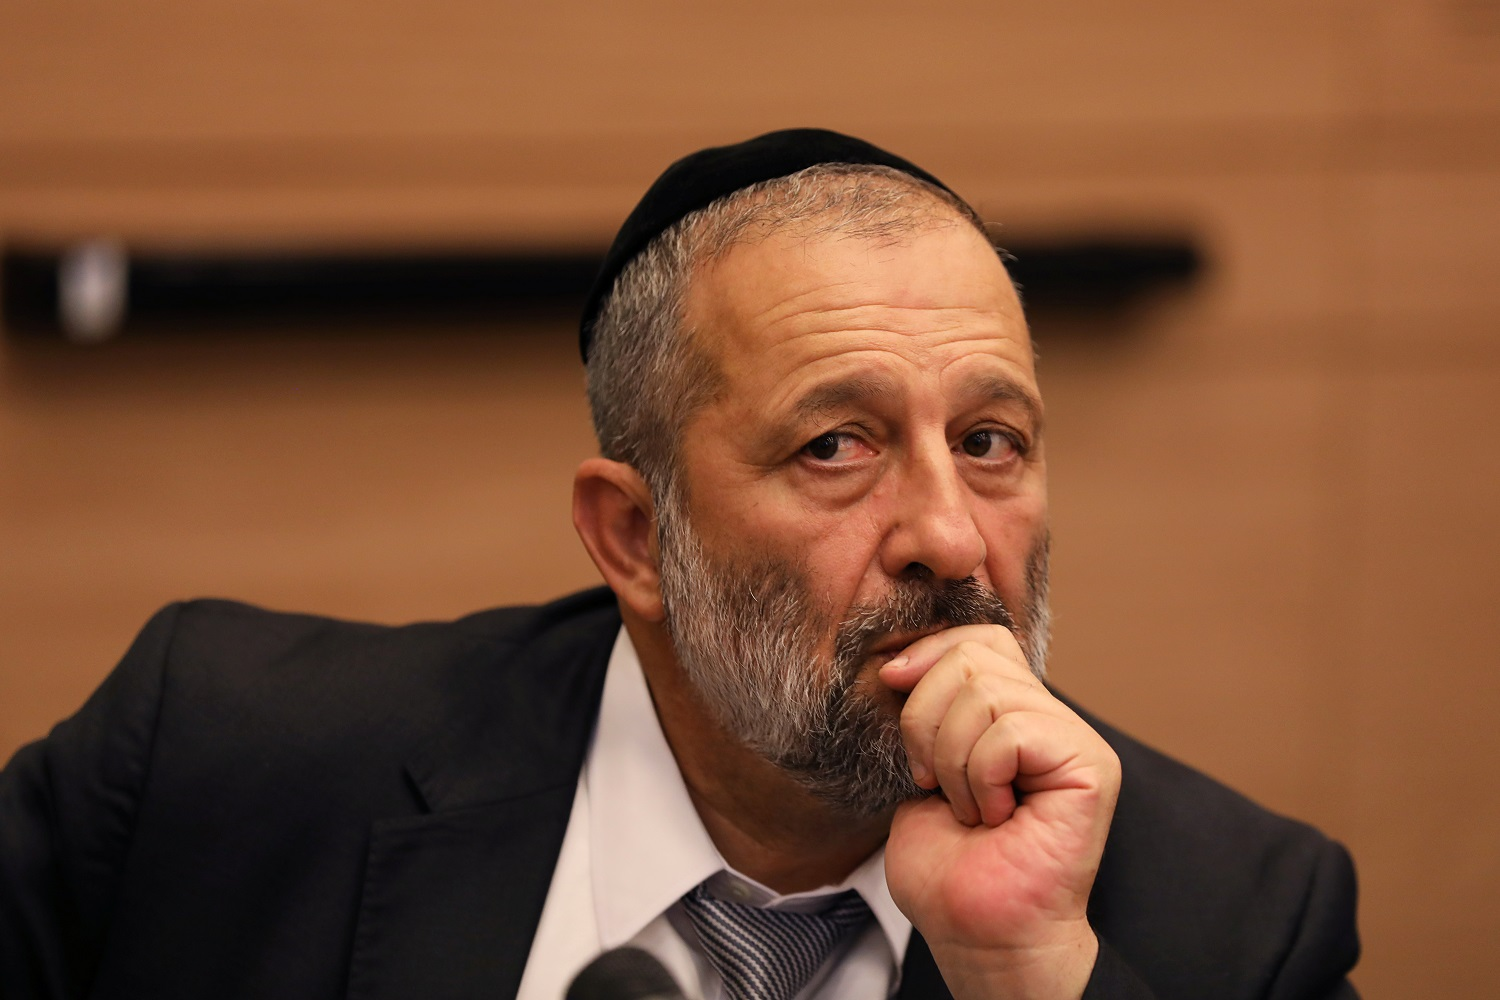 Ariye Deri, leader of the Shas party, attends a meeting at the Knesset in September 2017 (Reuters)